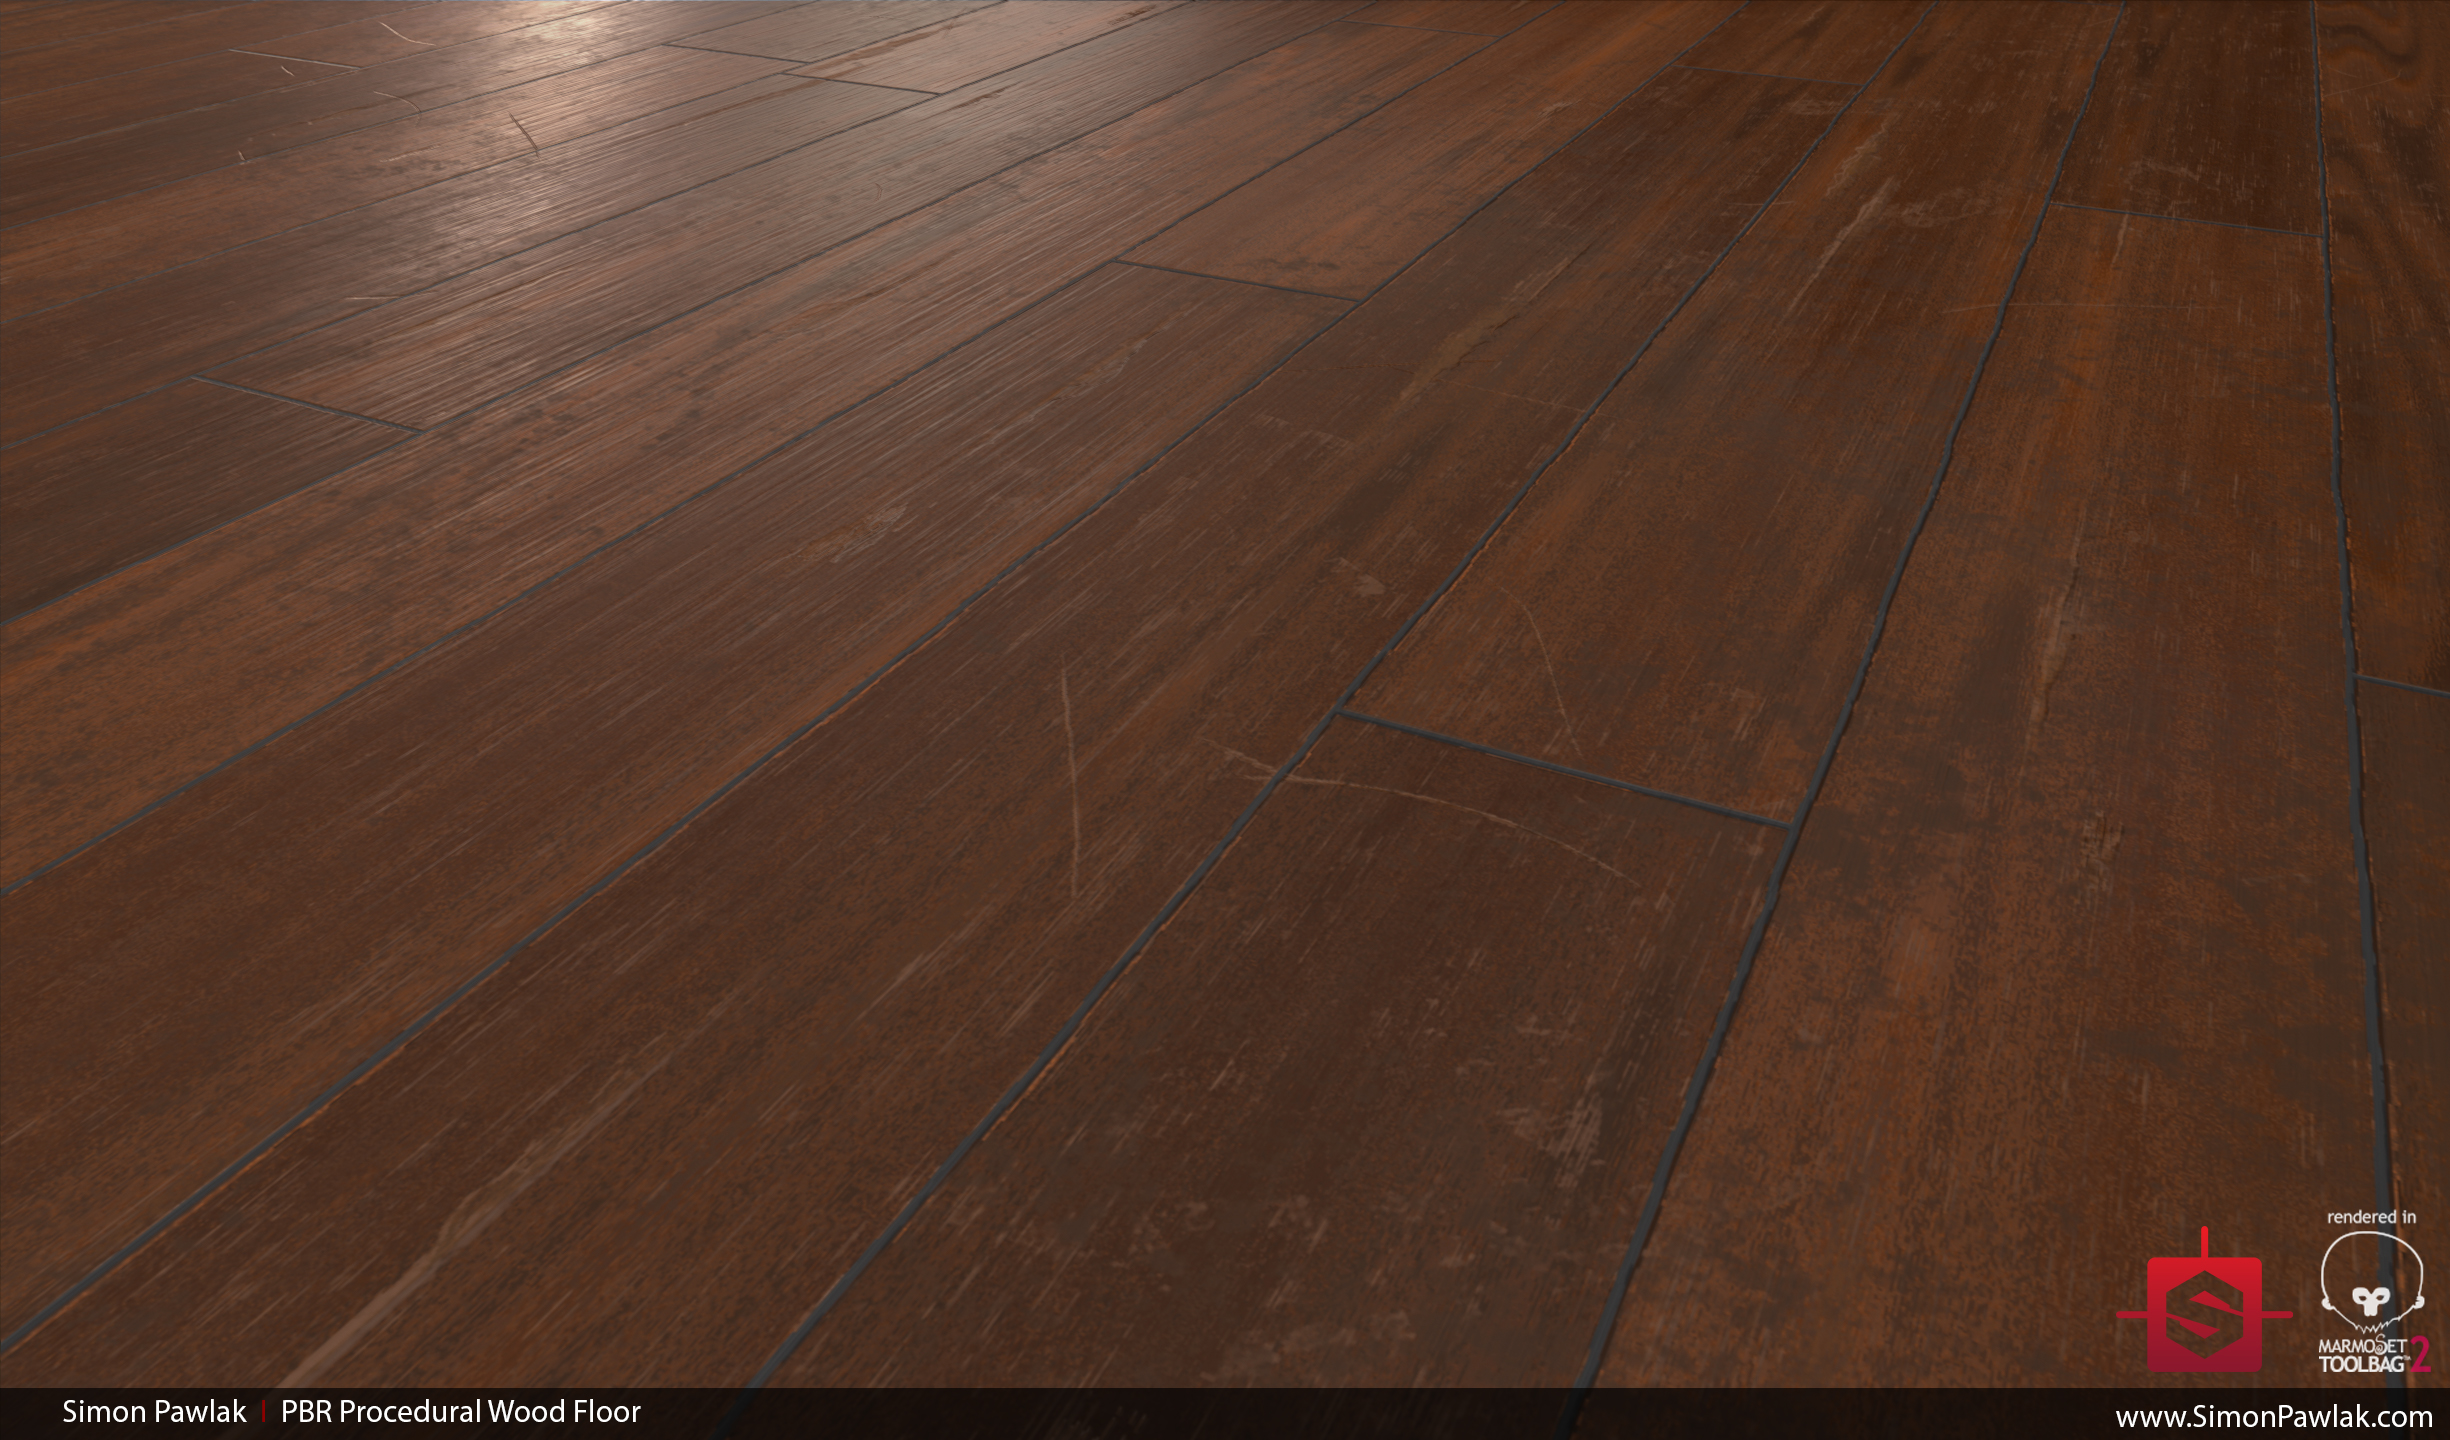 SP3_WoodFloor_1.jpg